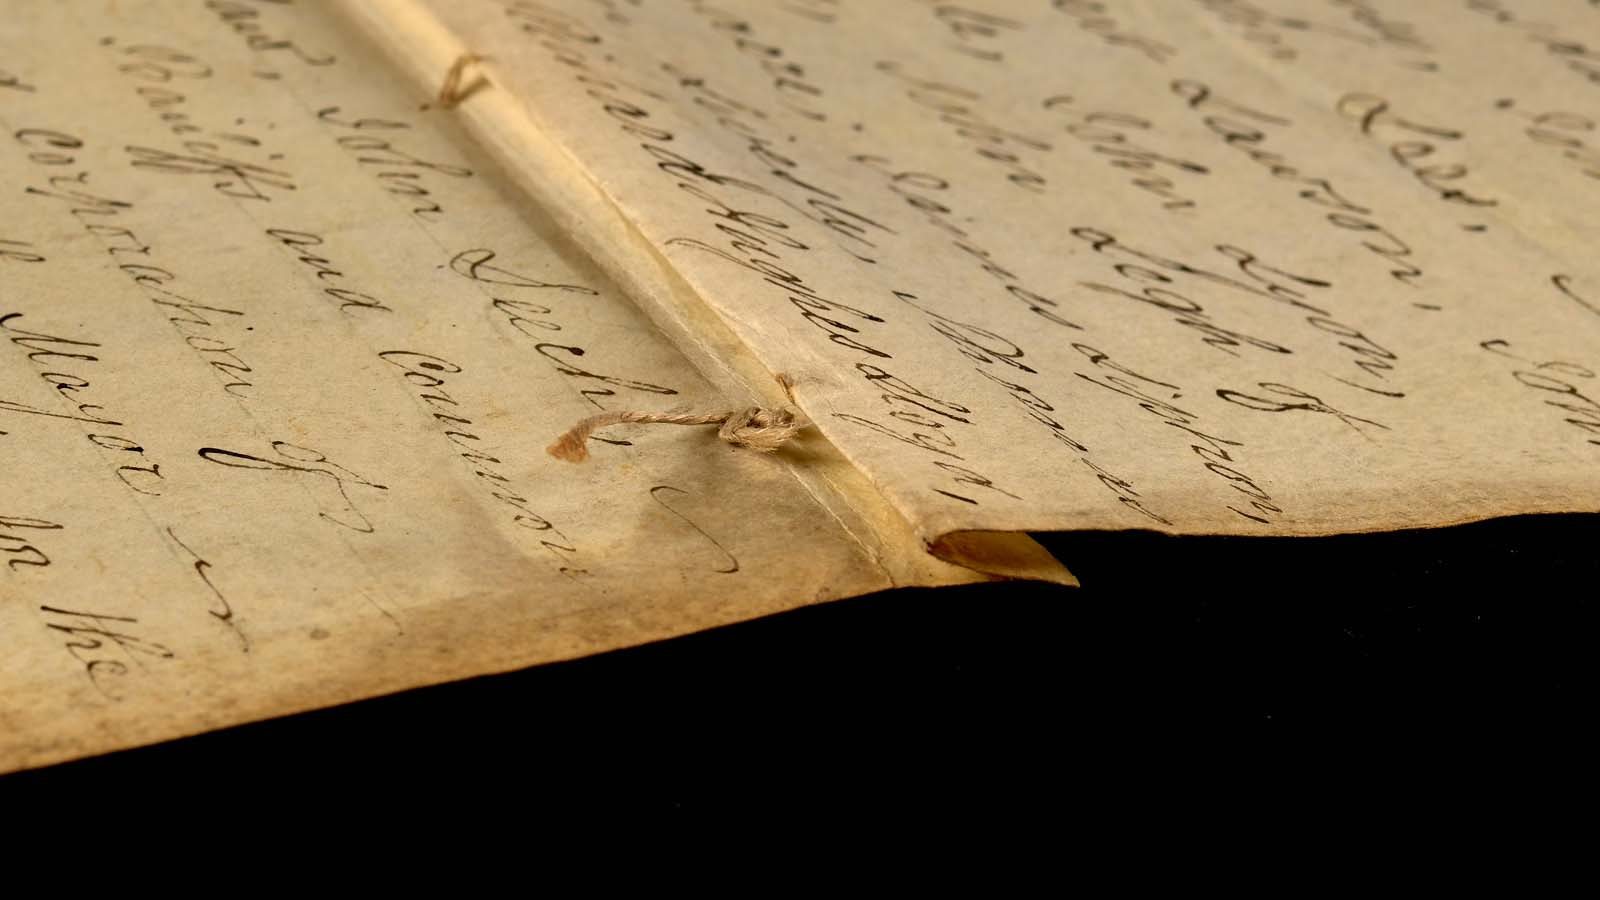 close up of handwritten words on parchment